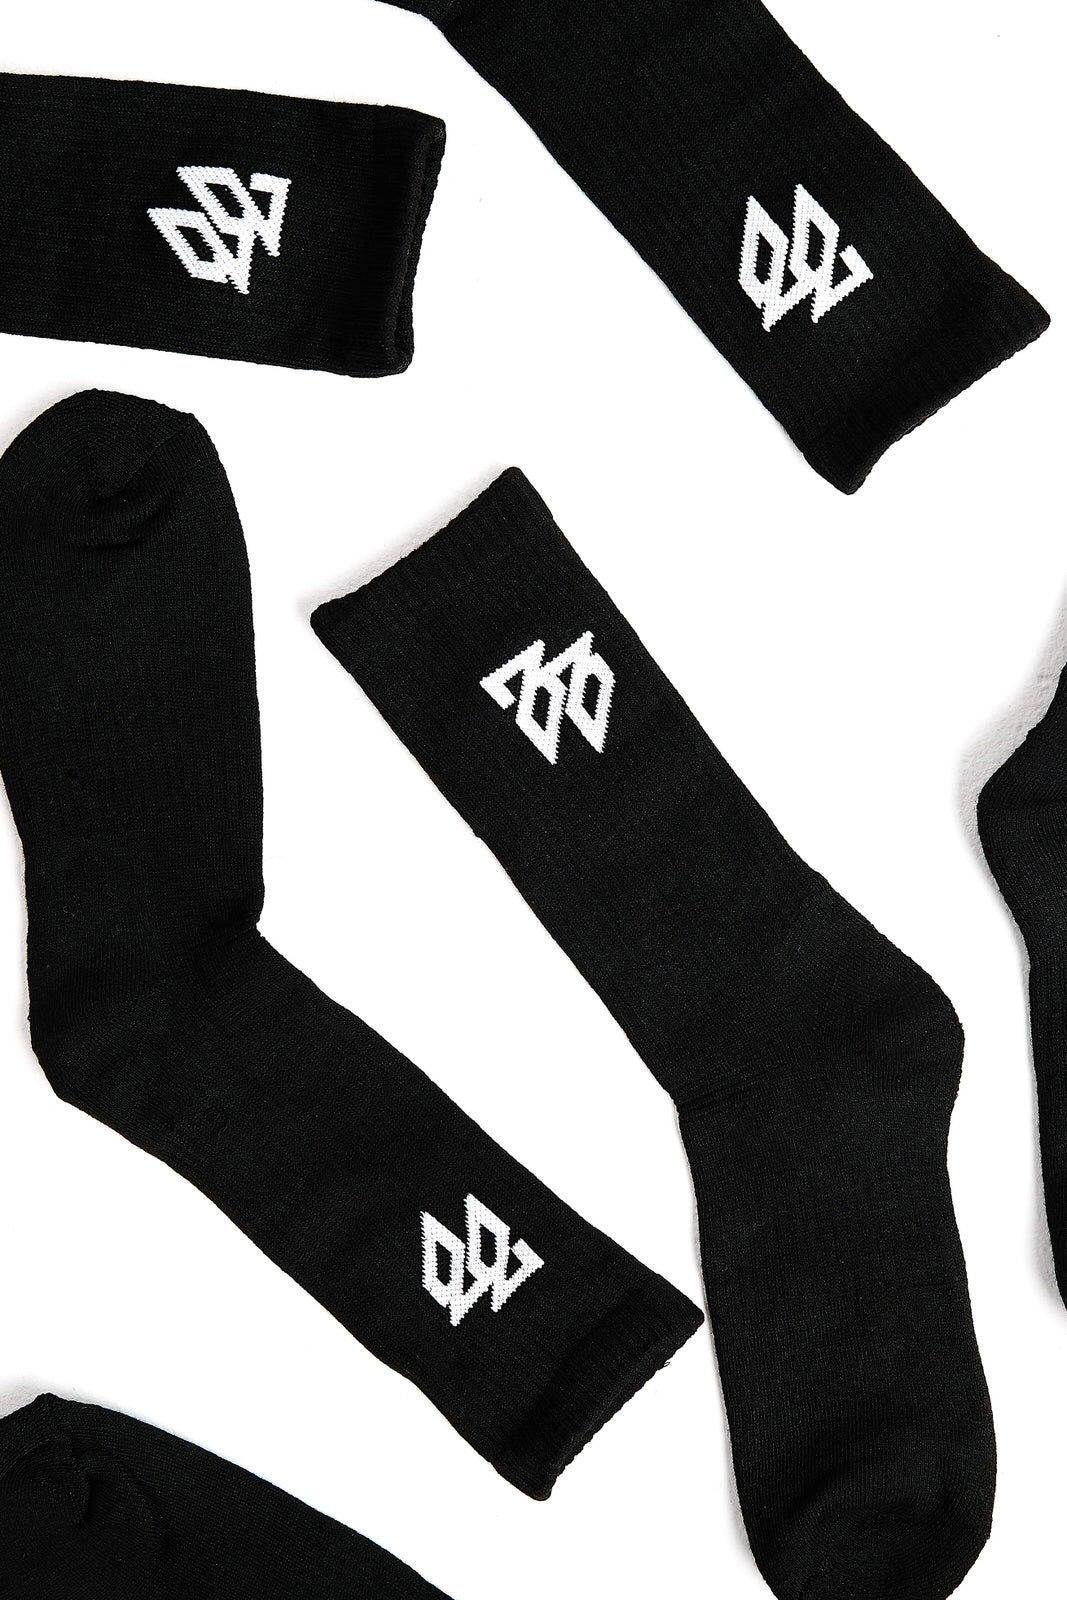 Crew Socks laid out on white background